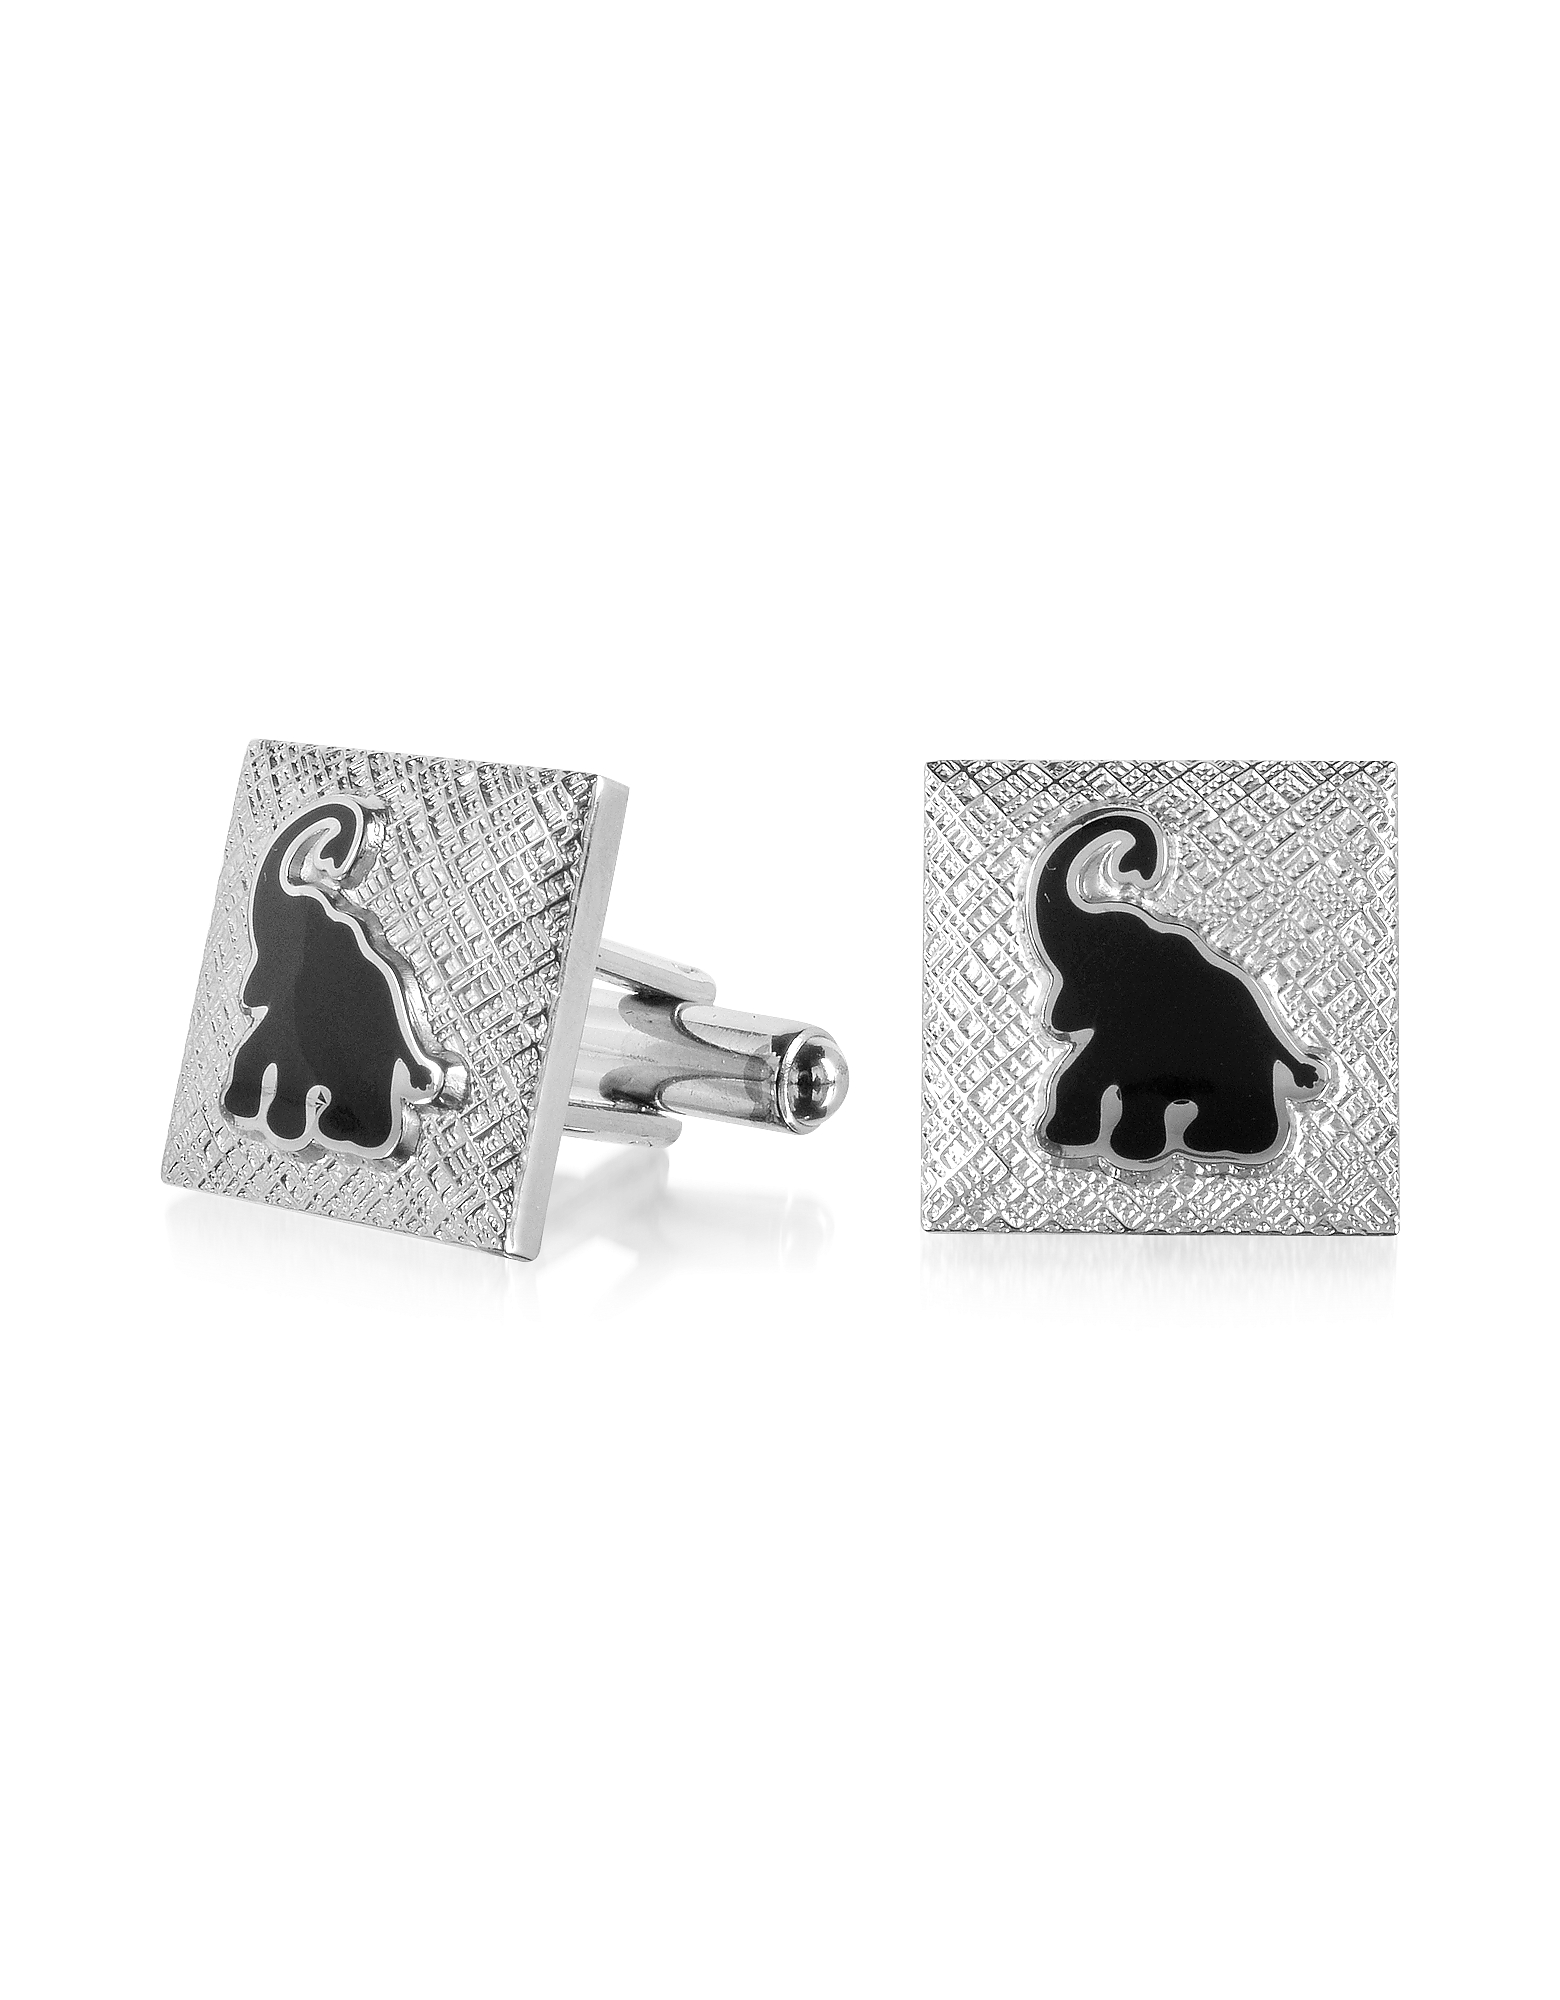 Forzieri Cufflinks, Fashion Garden - Black Elephant Square Cufflinks